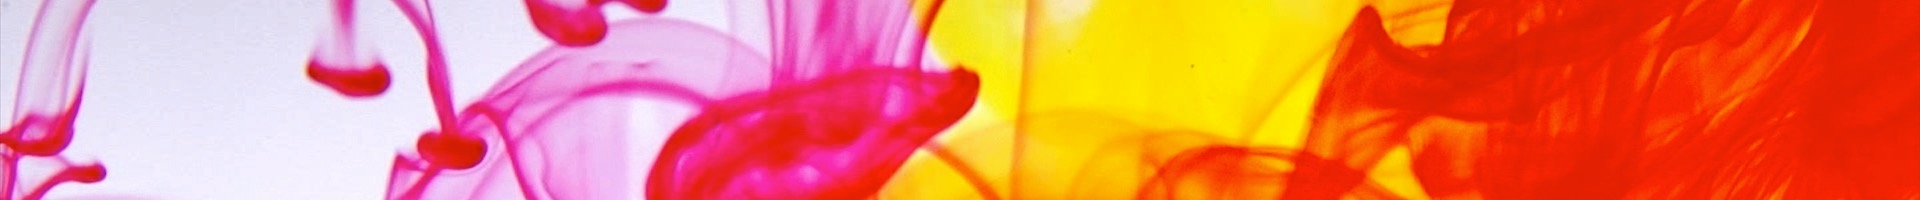 Header TicTac Stampa 5 | tictac.it